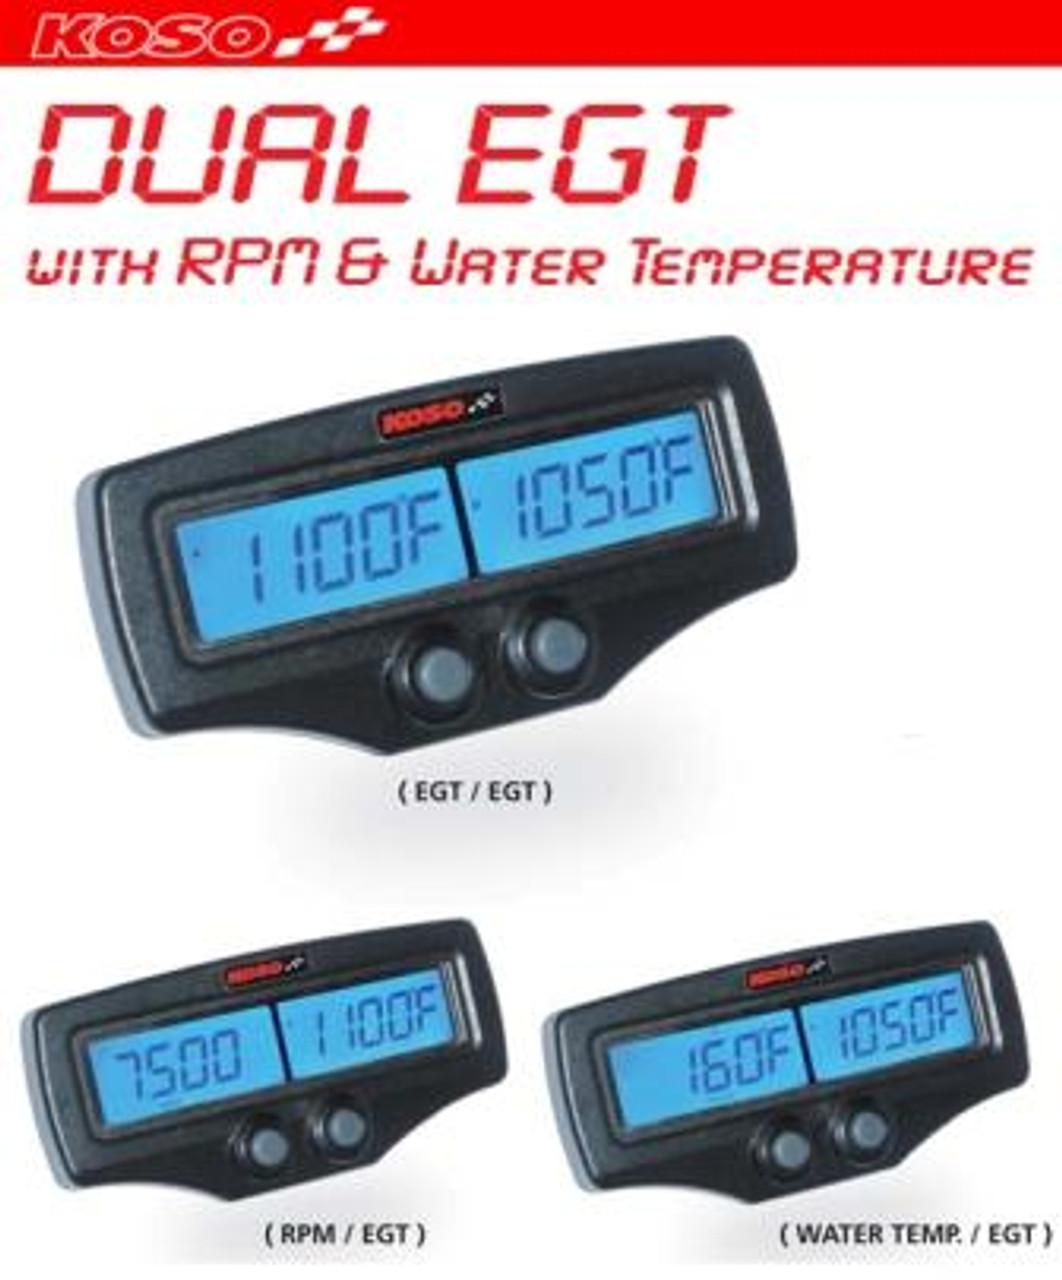 KOSO DUAL EGT WITH RPM AND WATER TEMPERATURE